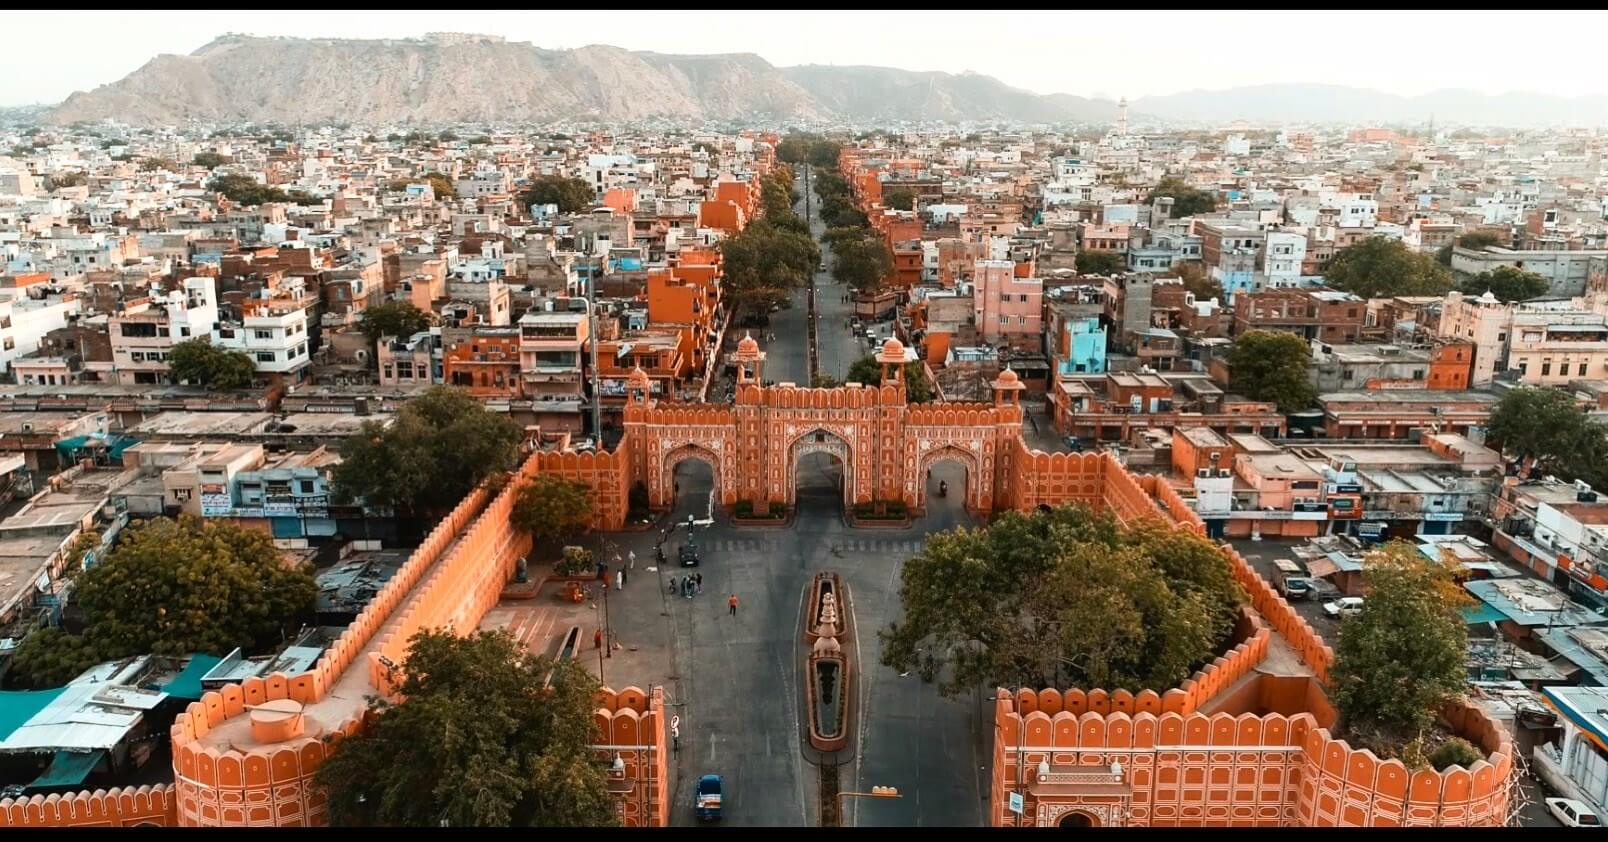 Smart road built with Jaipur heritage to be showcased at Dubai Expo